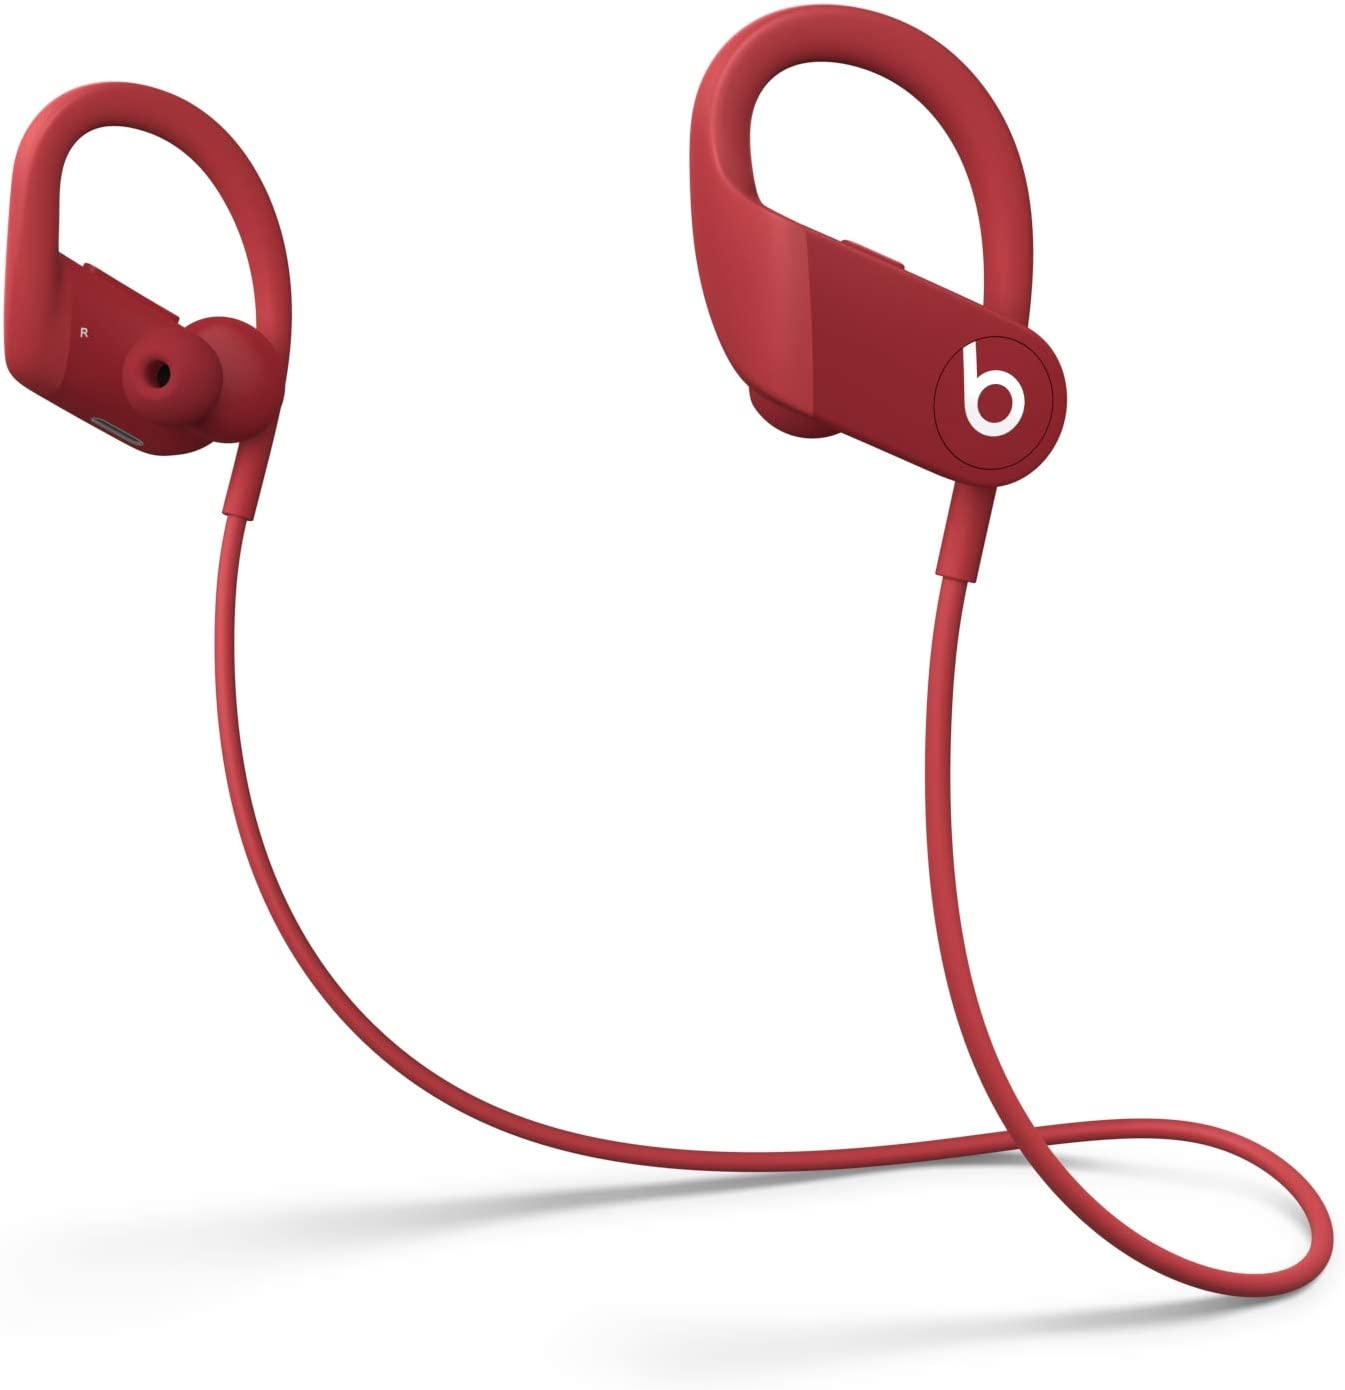 Amazon Com Powerbeats High Performance Wireless Earphones Apple H1 Headphone Chip Class 1 Bluetooth 15 Hours Of Listening Time Sweat Resistant Earbuds Red Latest Model